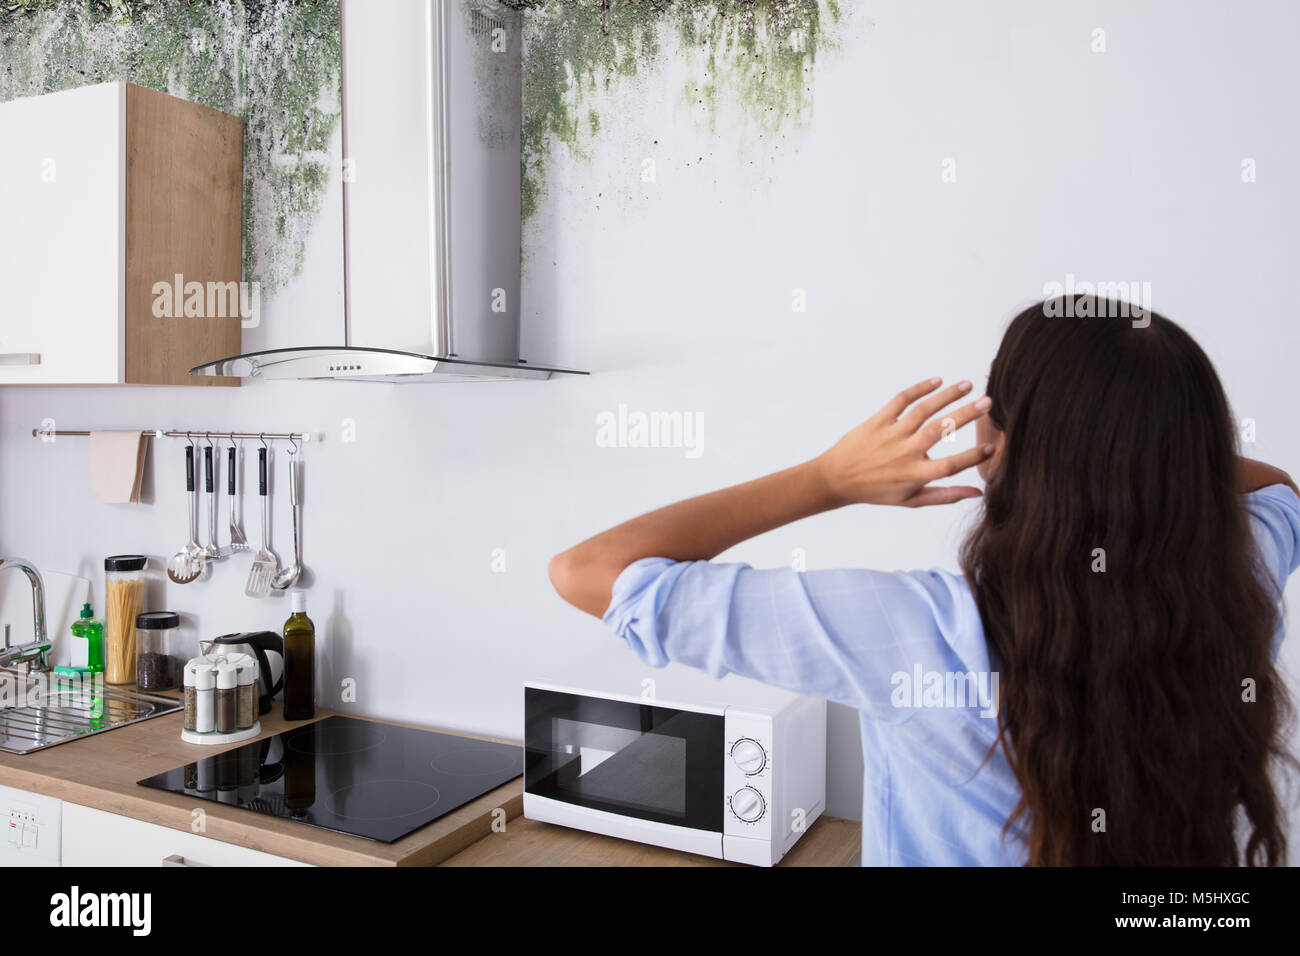 Rear View Of Shocked Woman Looking At The Damaged Ceiling In Kitchen - Stock Image